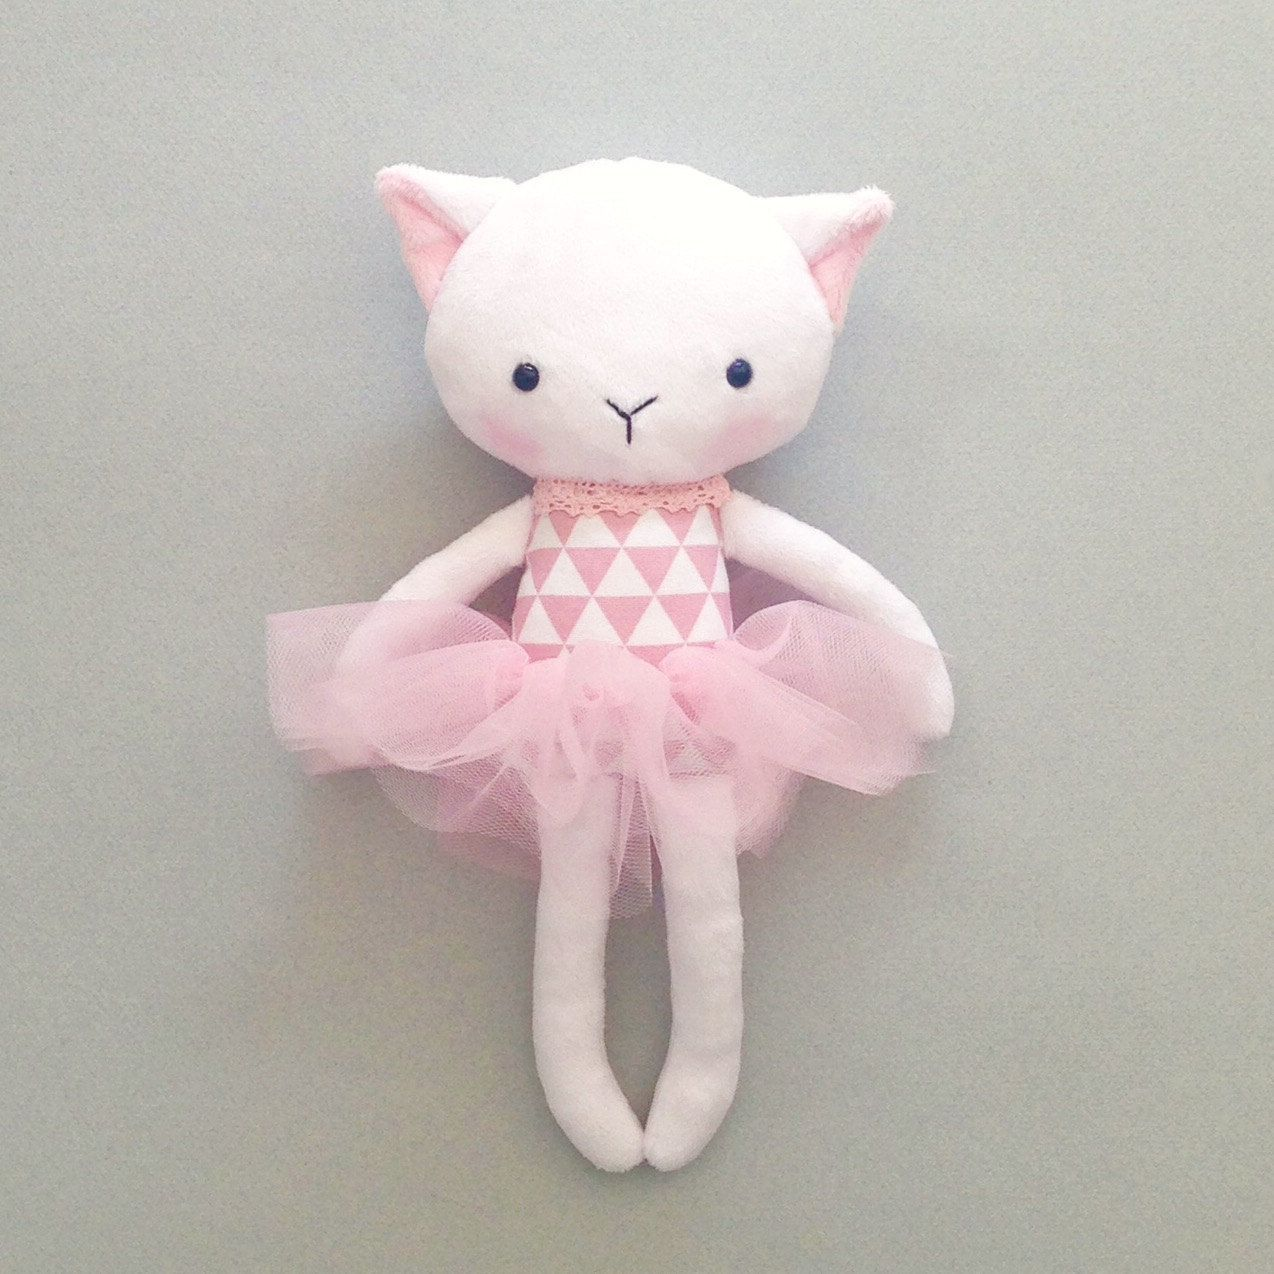 Toys and me images   This lovely cute doll is handmade and designed by me Shes made